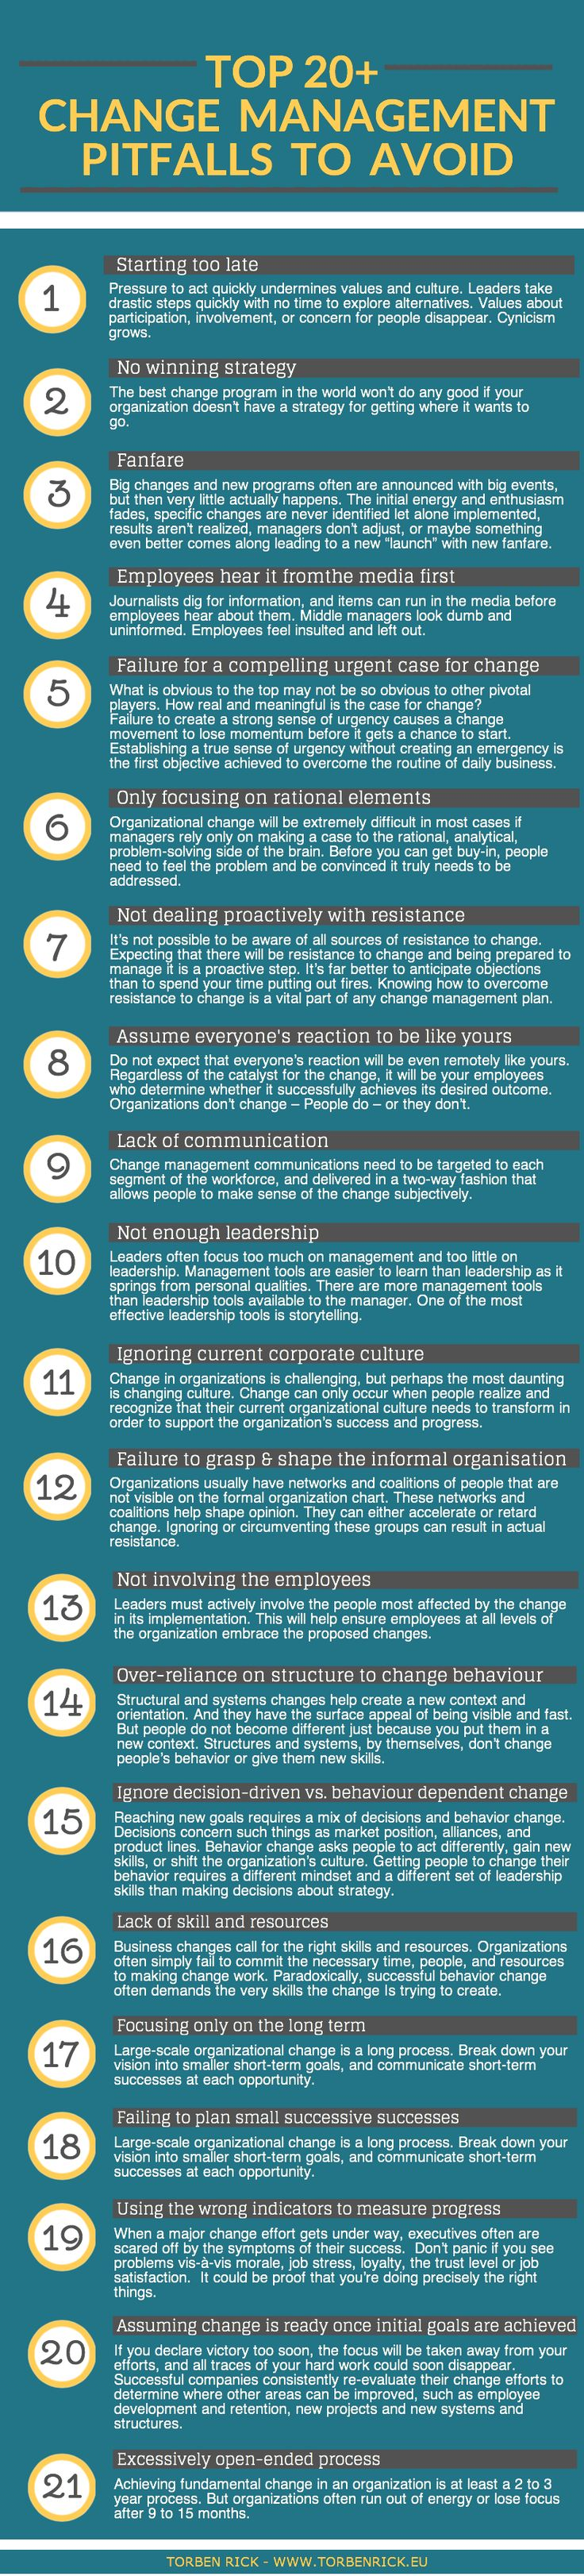 20 Change Pitfalls to Avoid [infographic]